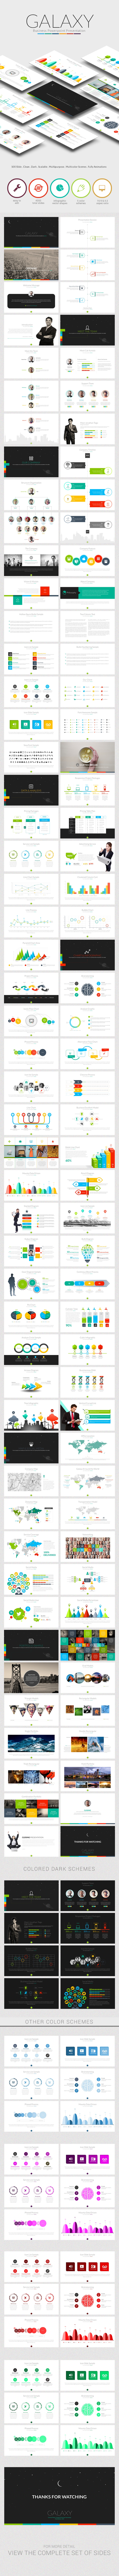 Galaxy Business Powerpoint - Business PowerPoint Templates